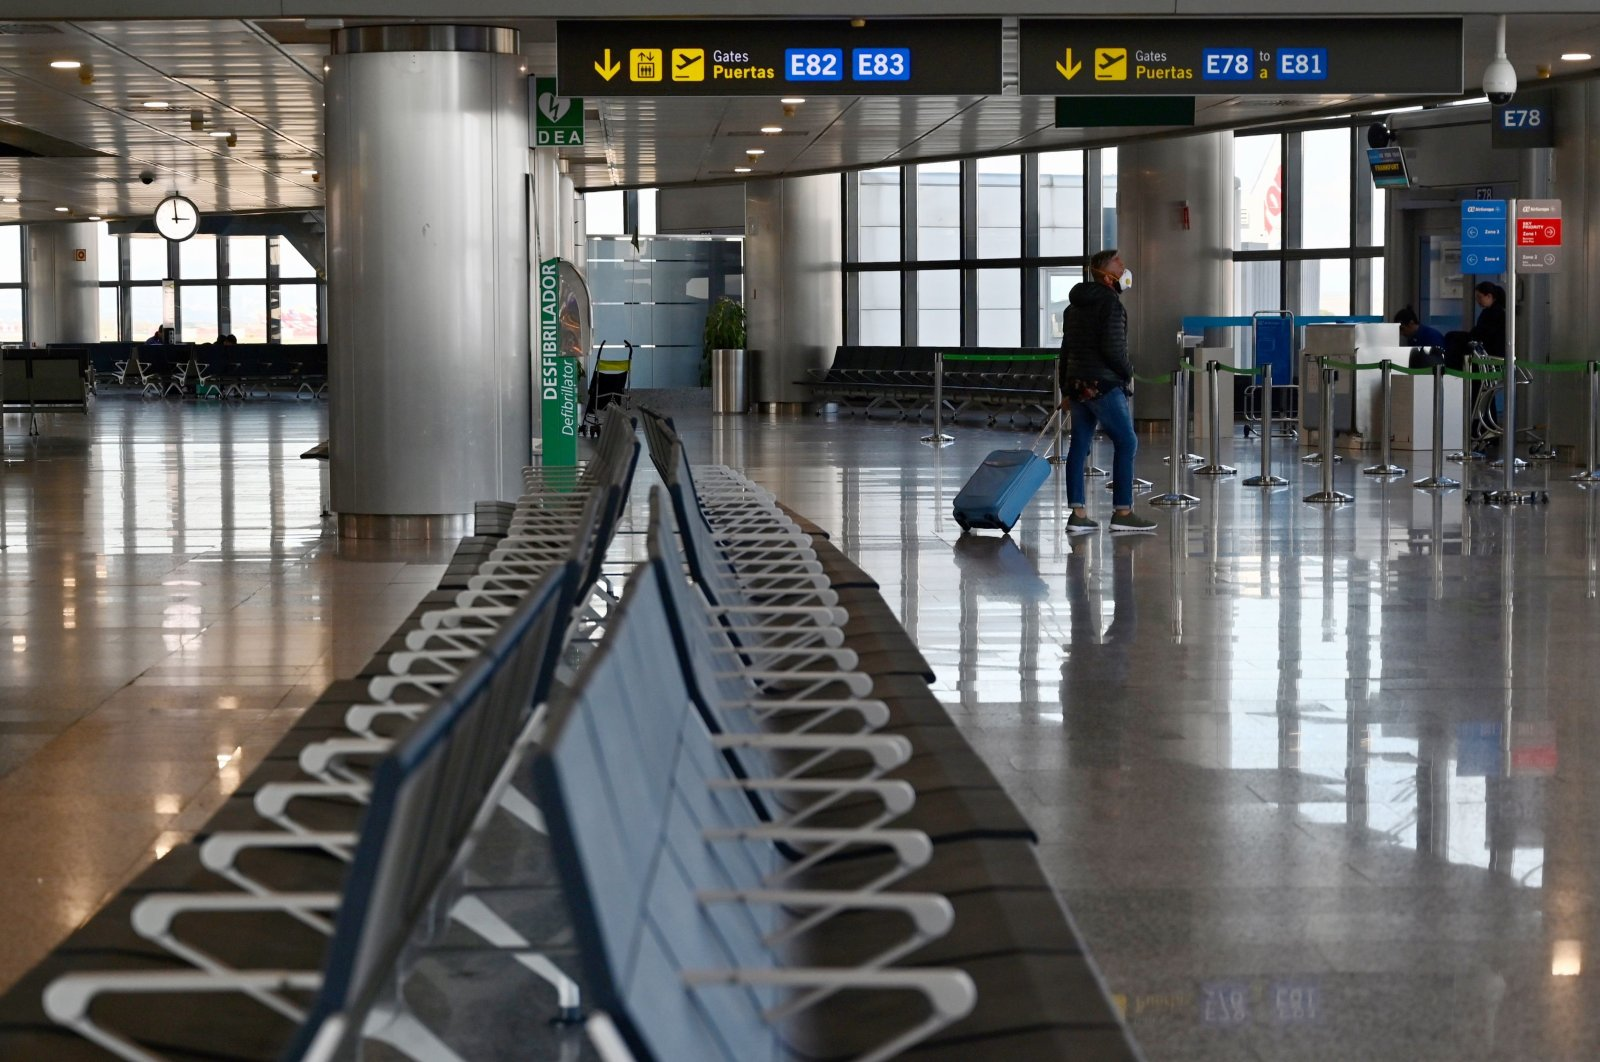 A person wearing a protective mask pulls a trolley along rows of empty seats at the Madrid-Barajas Adolfo Suarez Airport in Barajas on March 14, 2020. (AFP Photo)